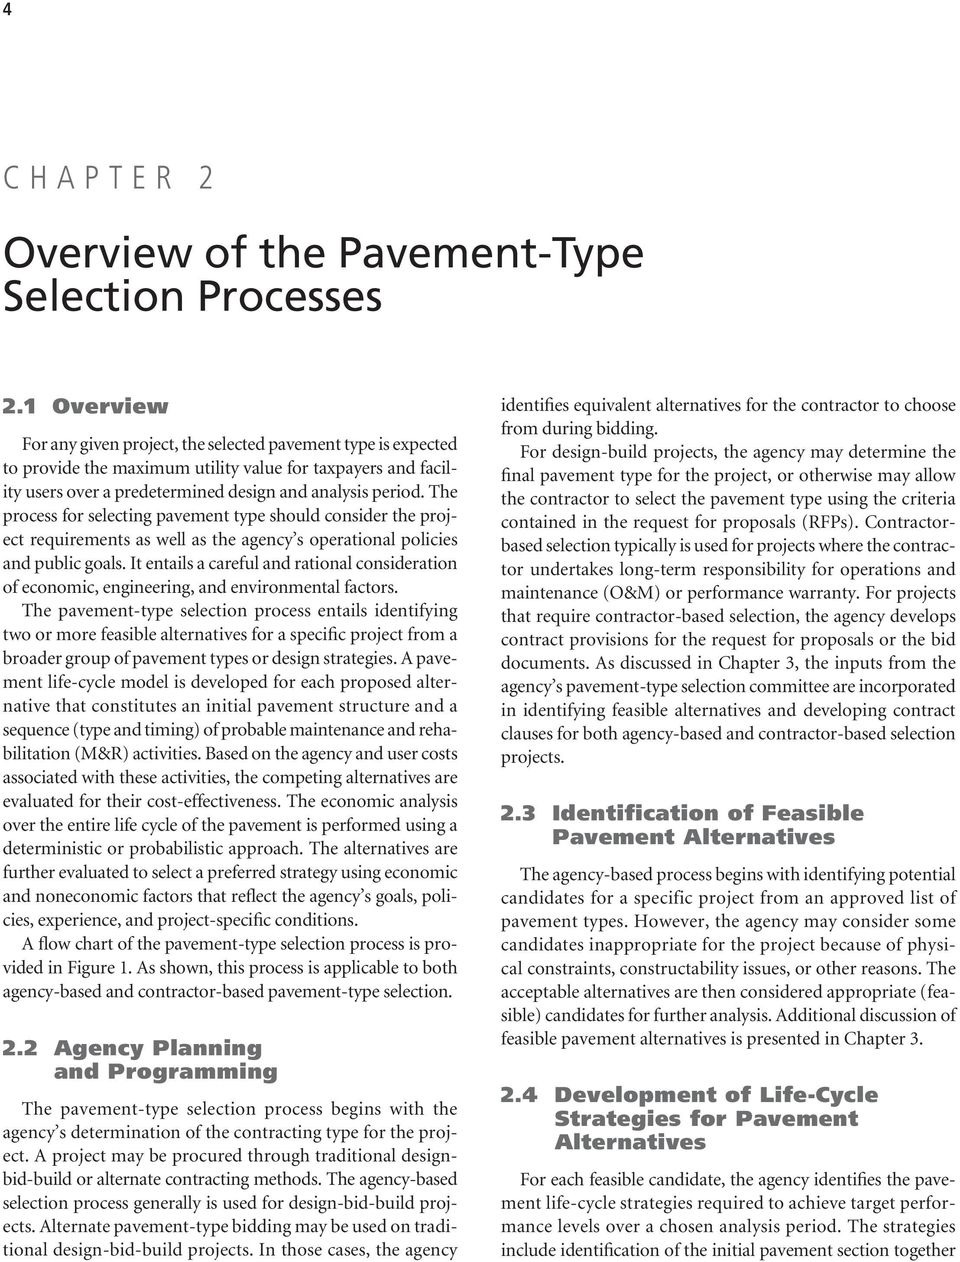 The process for selecting pavement type should consider the project requirements as well as the agency s operational policies and public goals.